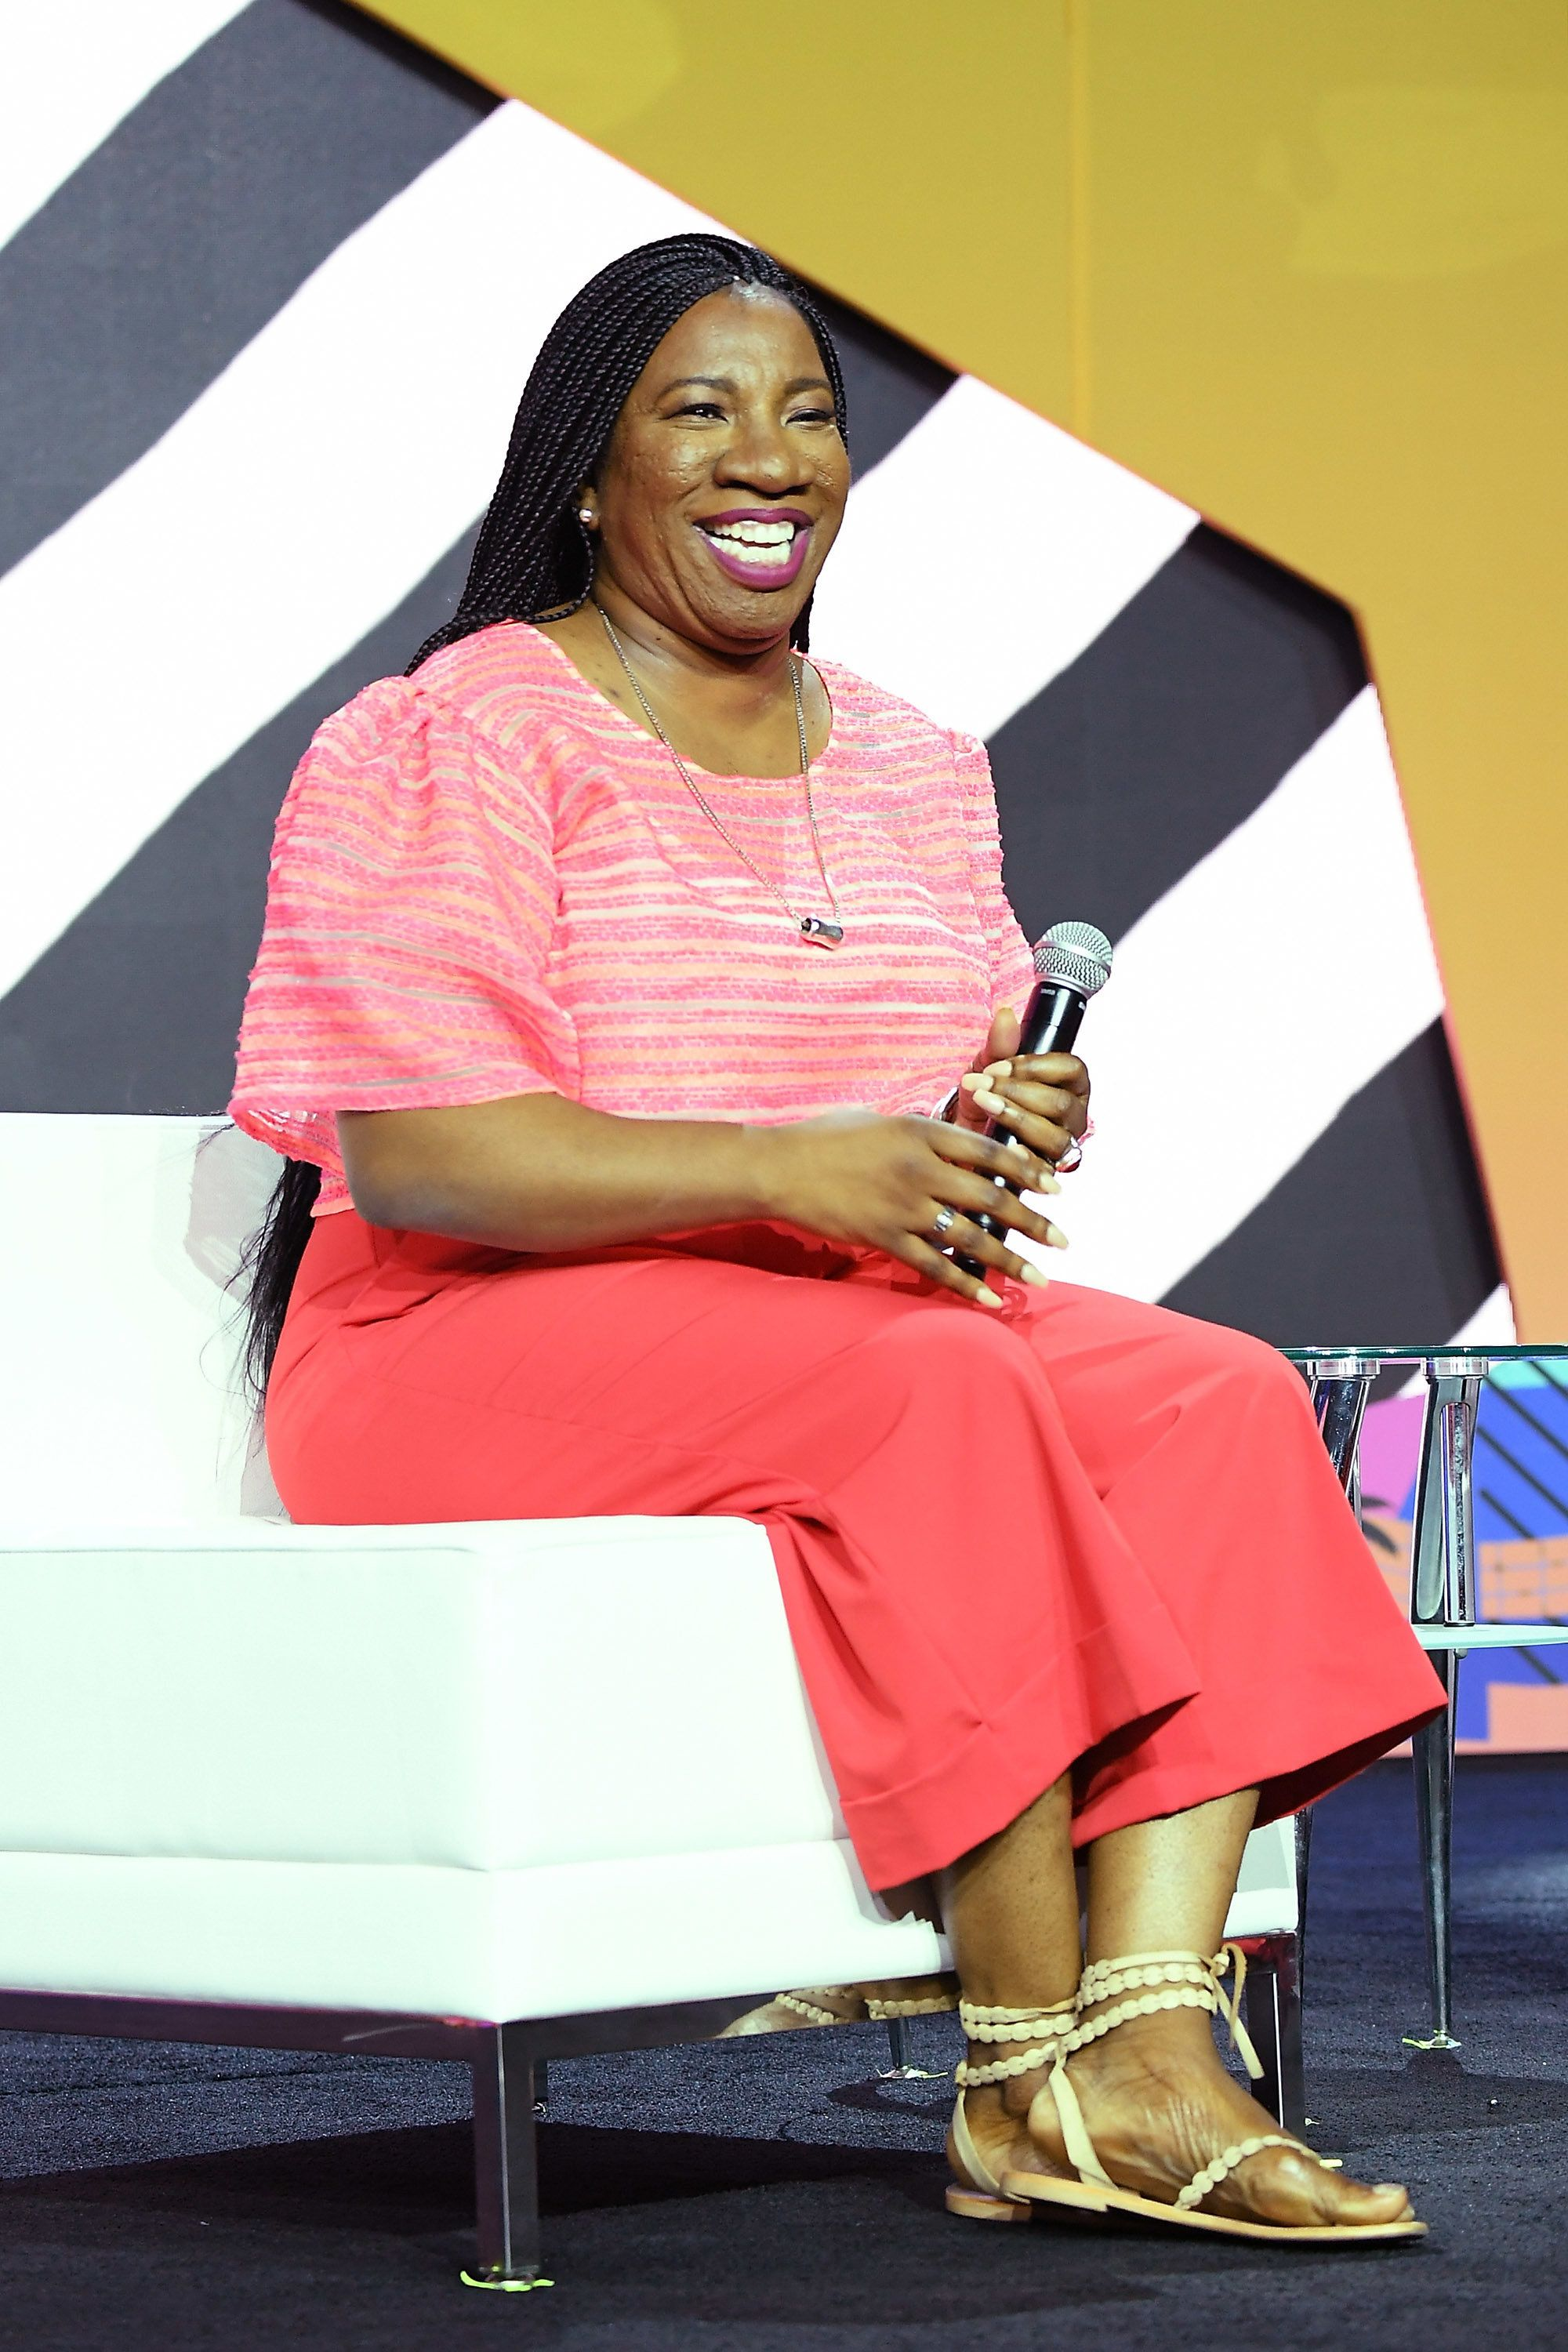 NEW ORLEANS, LA - JULY 06:  Tarana Burke speaks onstage during the 2018 Essence Festival presented by Coca-Cola at Ernest N. Morial Convention Center on July 6, 2018 in New Orleans, Louisiana.  (Photo by Paras Griffin/Getty Images for Essence)